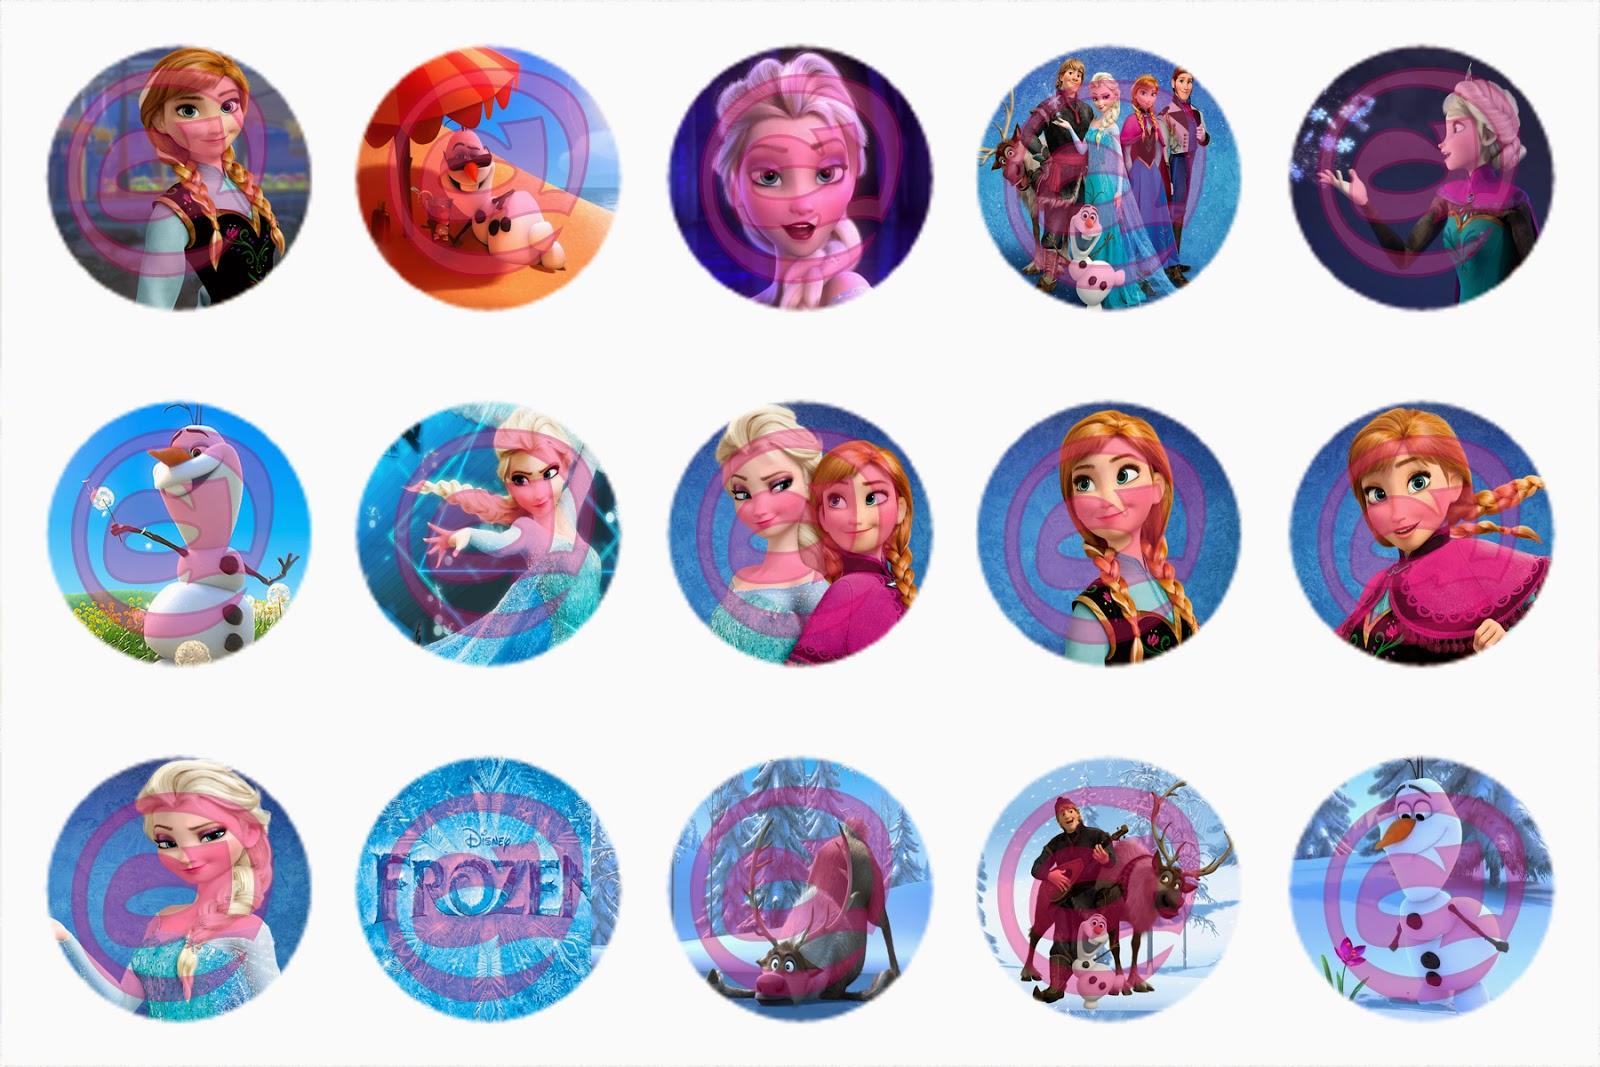 Unique bottle cap designs disney frozen bottle cap image for Cool bottle cap designs